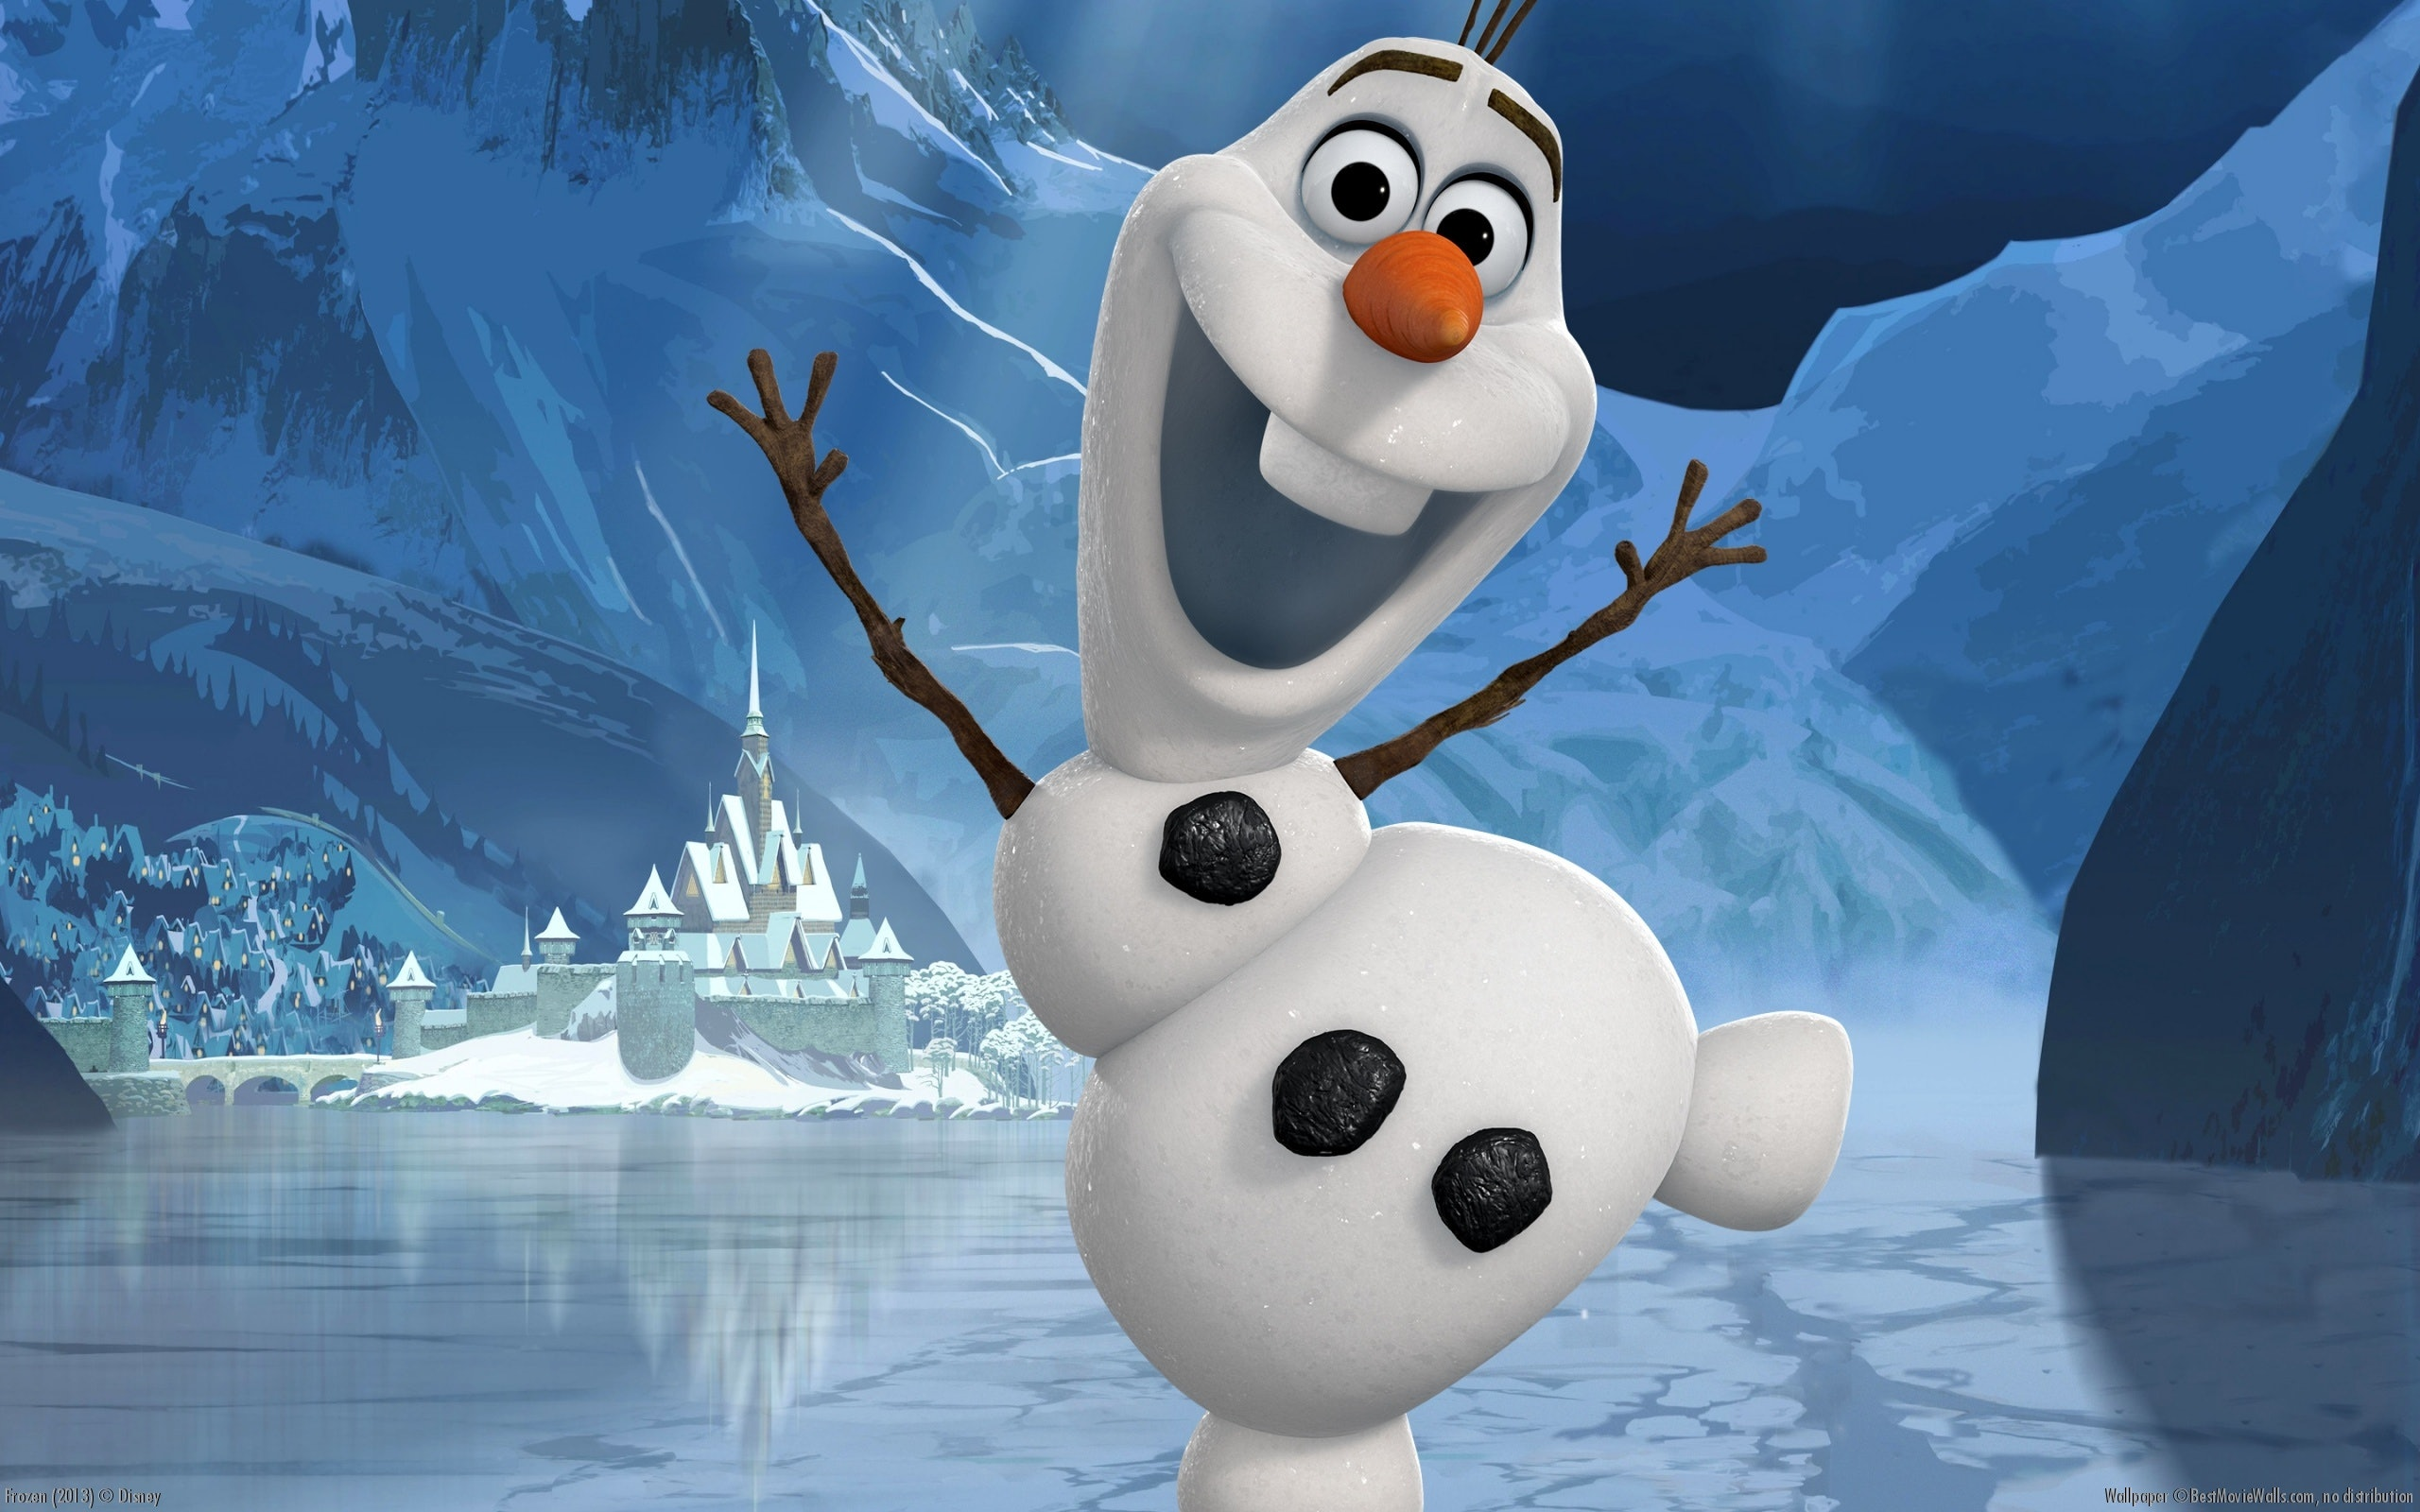 How Does Frozen Compare To Other Disney Princess Films It